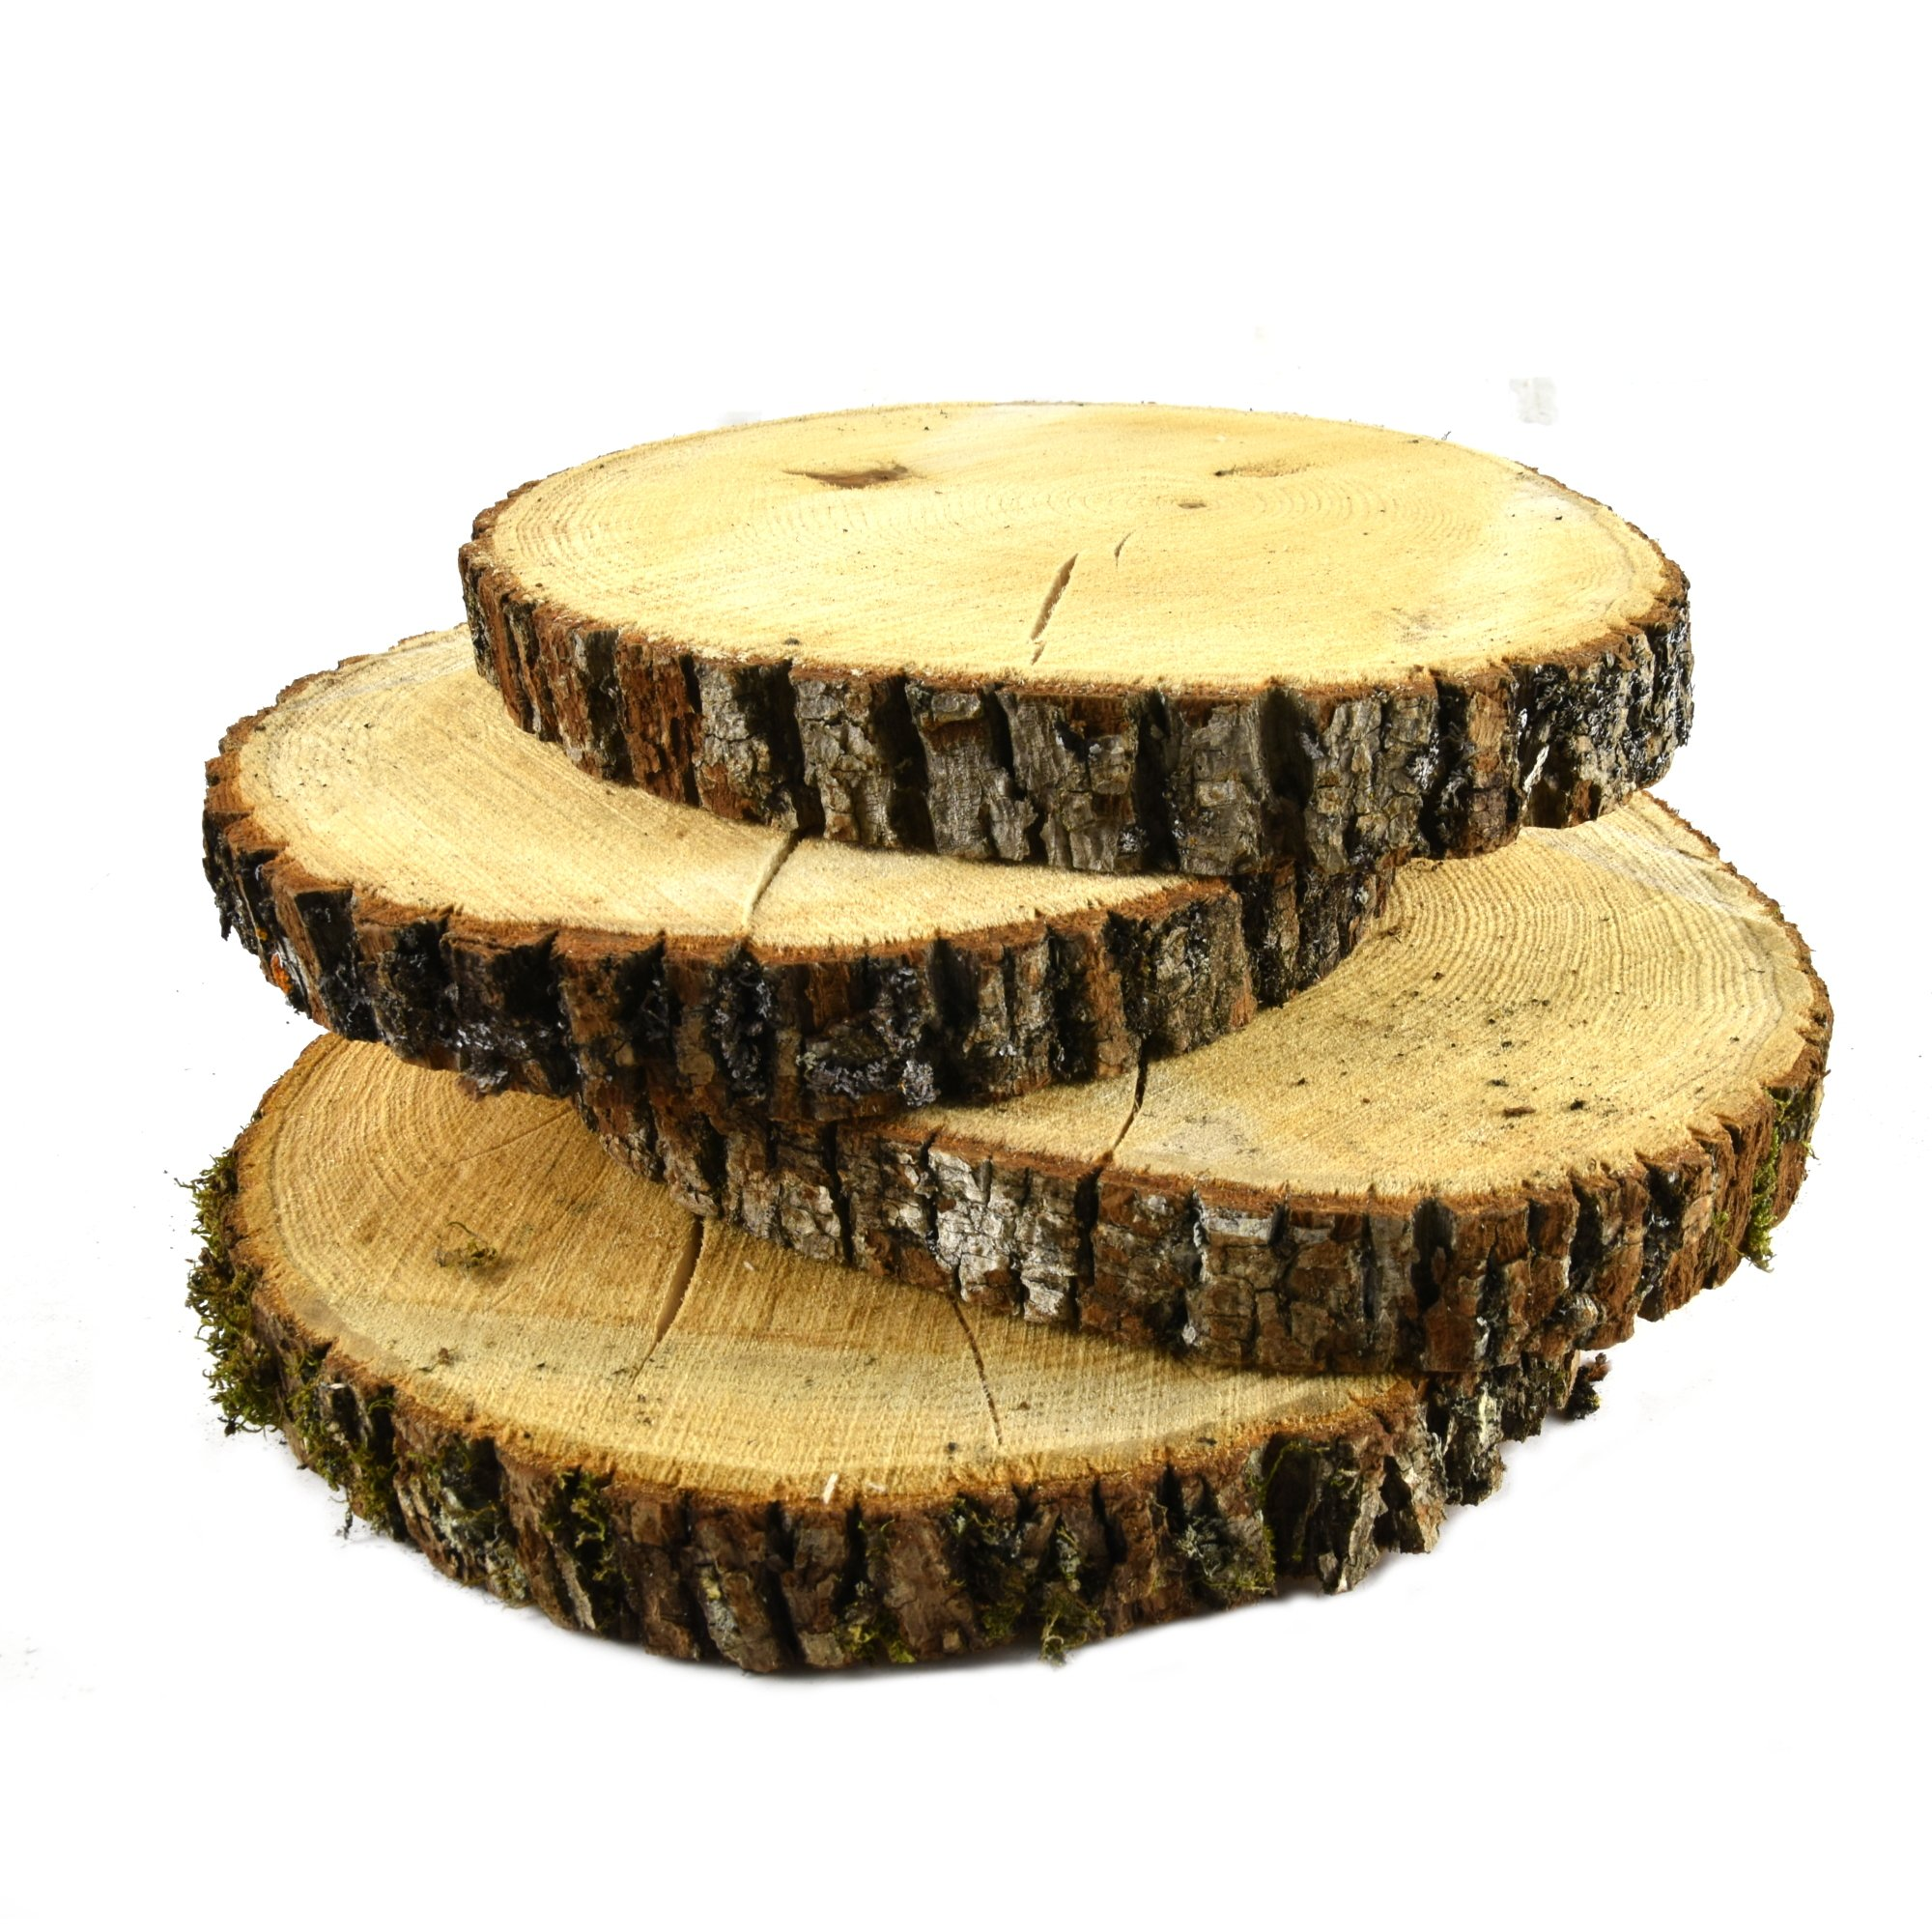 Natural Untreated Basswood Slabs 7'' to 10'' Diameter (Large) - Excellent for Weddings, Centerpieces, DIY Projects, Table Chargers Or Decoration! by Woodland Decor (Set of Four Slabs)- with Cracks